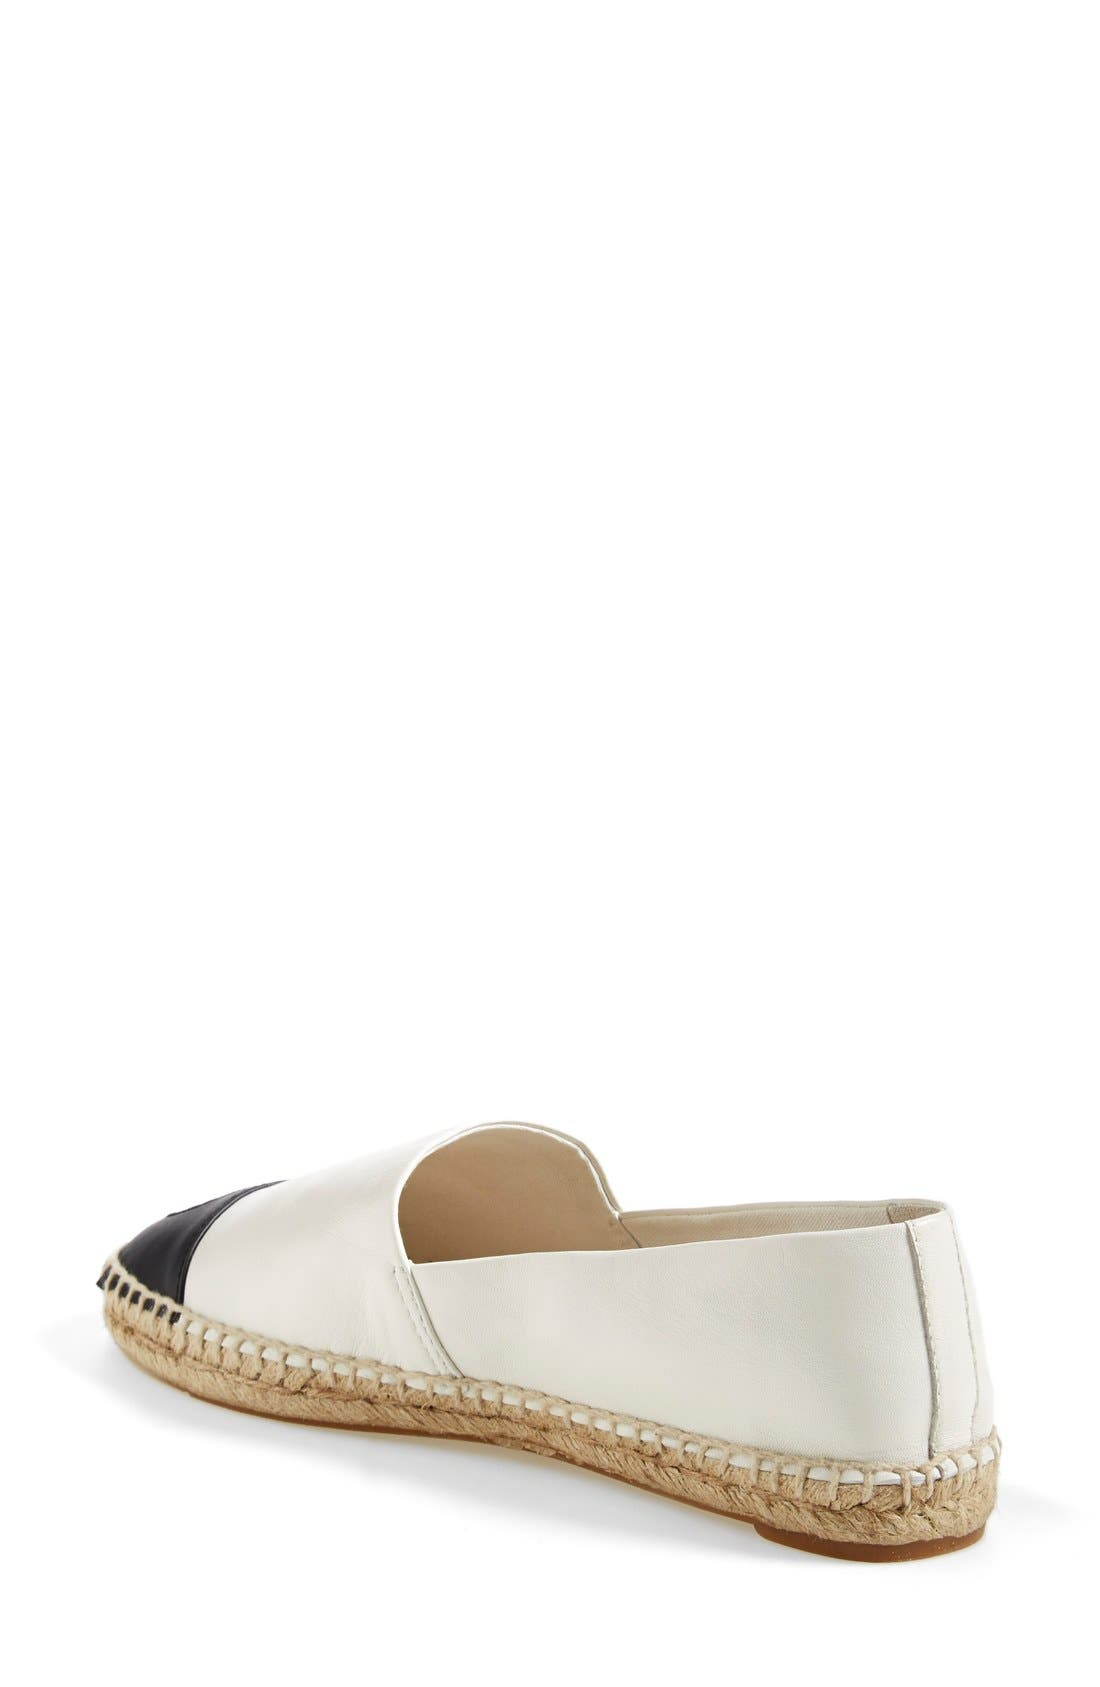 TORY BURCH, Colorblock Espadrille Flat, Alternate thumbnail 3, color, IVORY/ BLACK